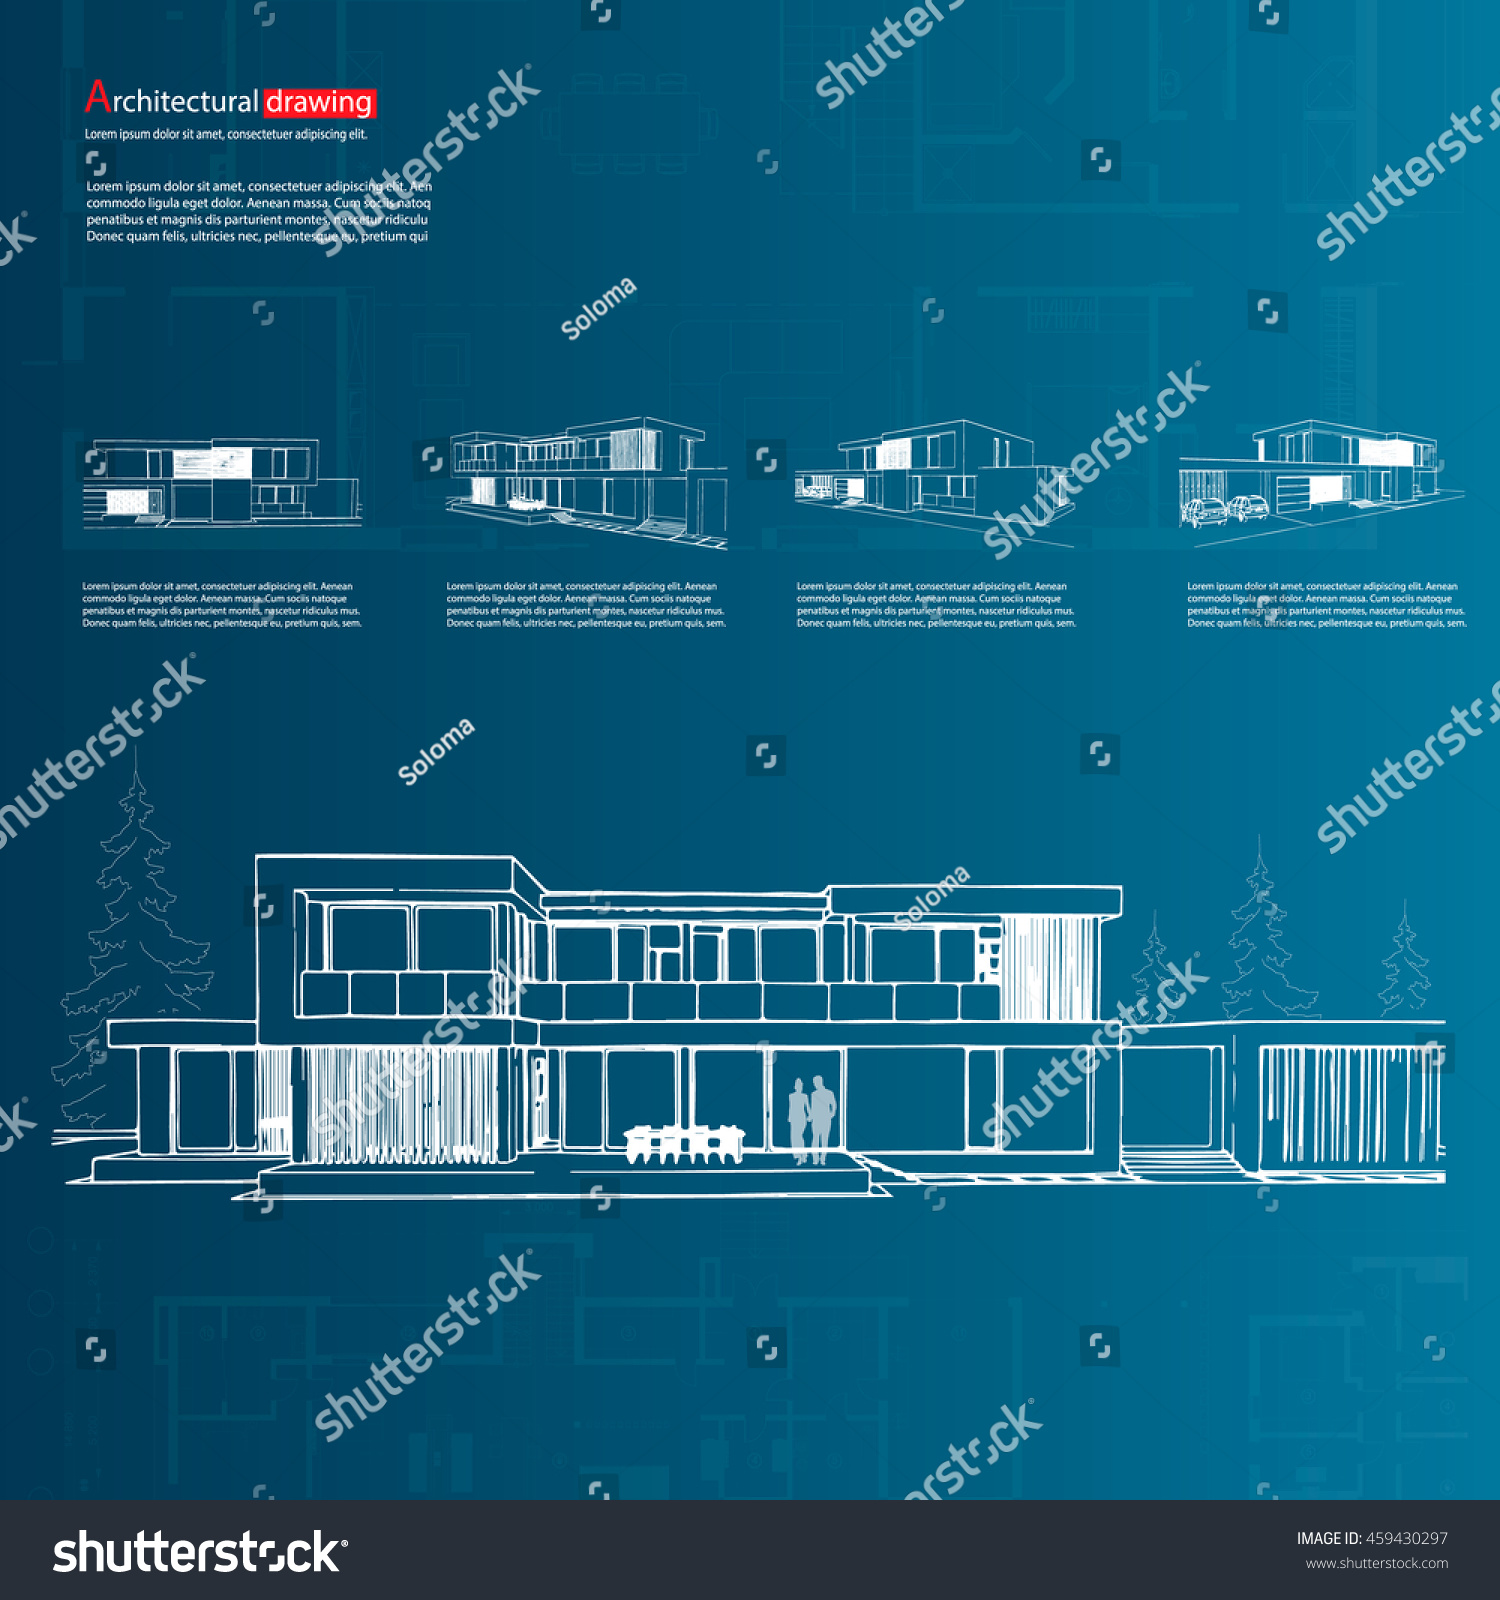 Wireframe blueprint drawing 3d building house stock vector hd wireframe blueprint drawing of 3d building house vector architectural template background malvernweather Image collections